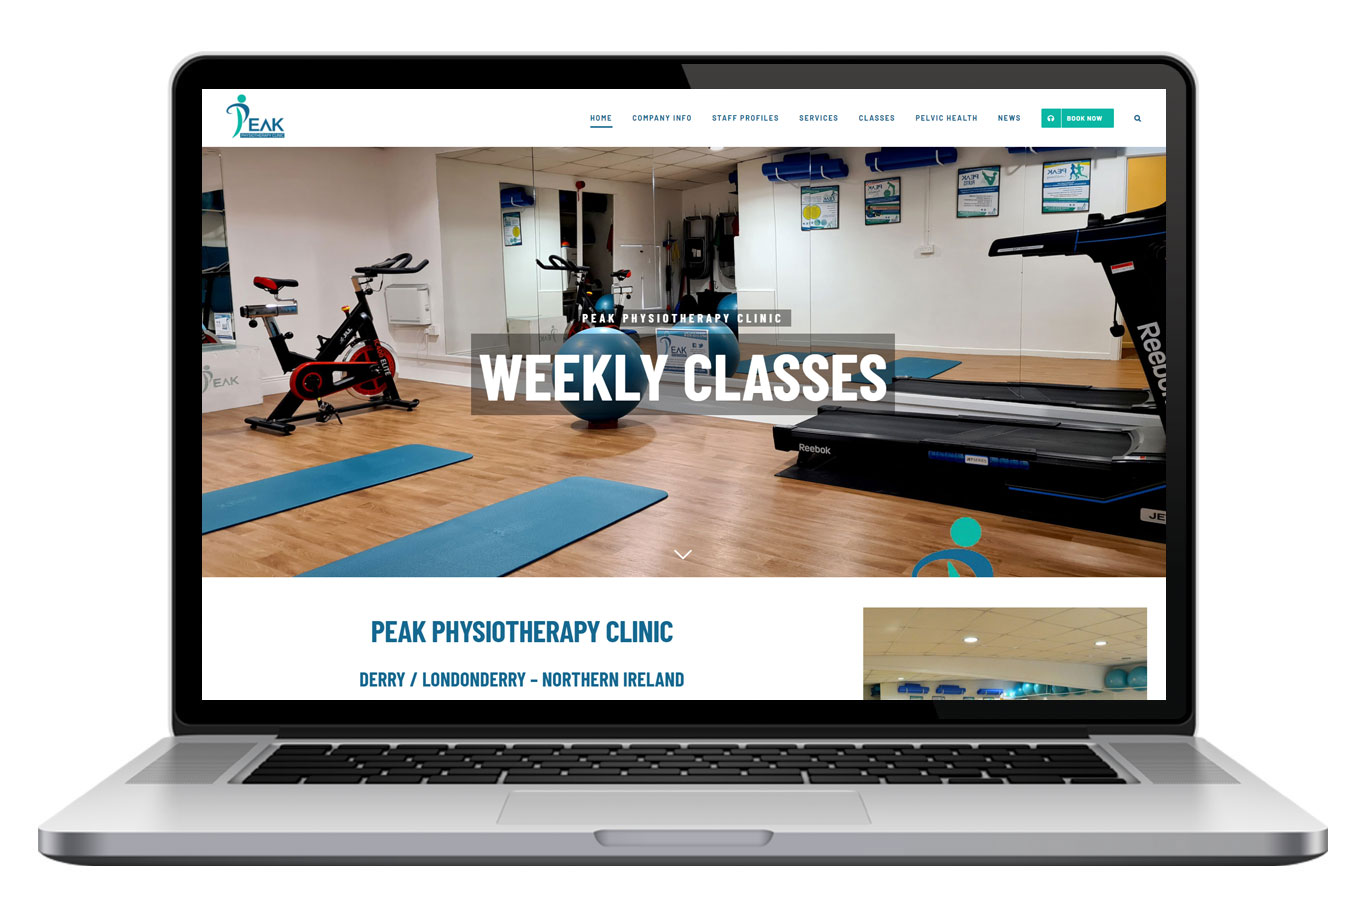 PEAK PHYSIOTHERAPY CLINIC